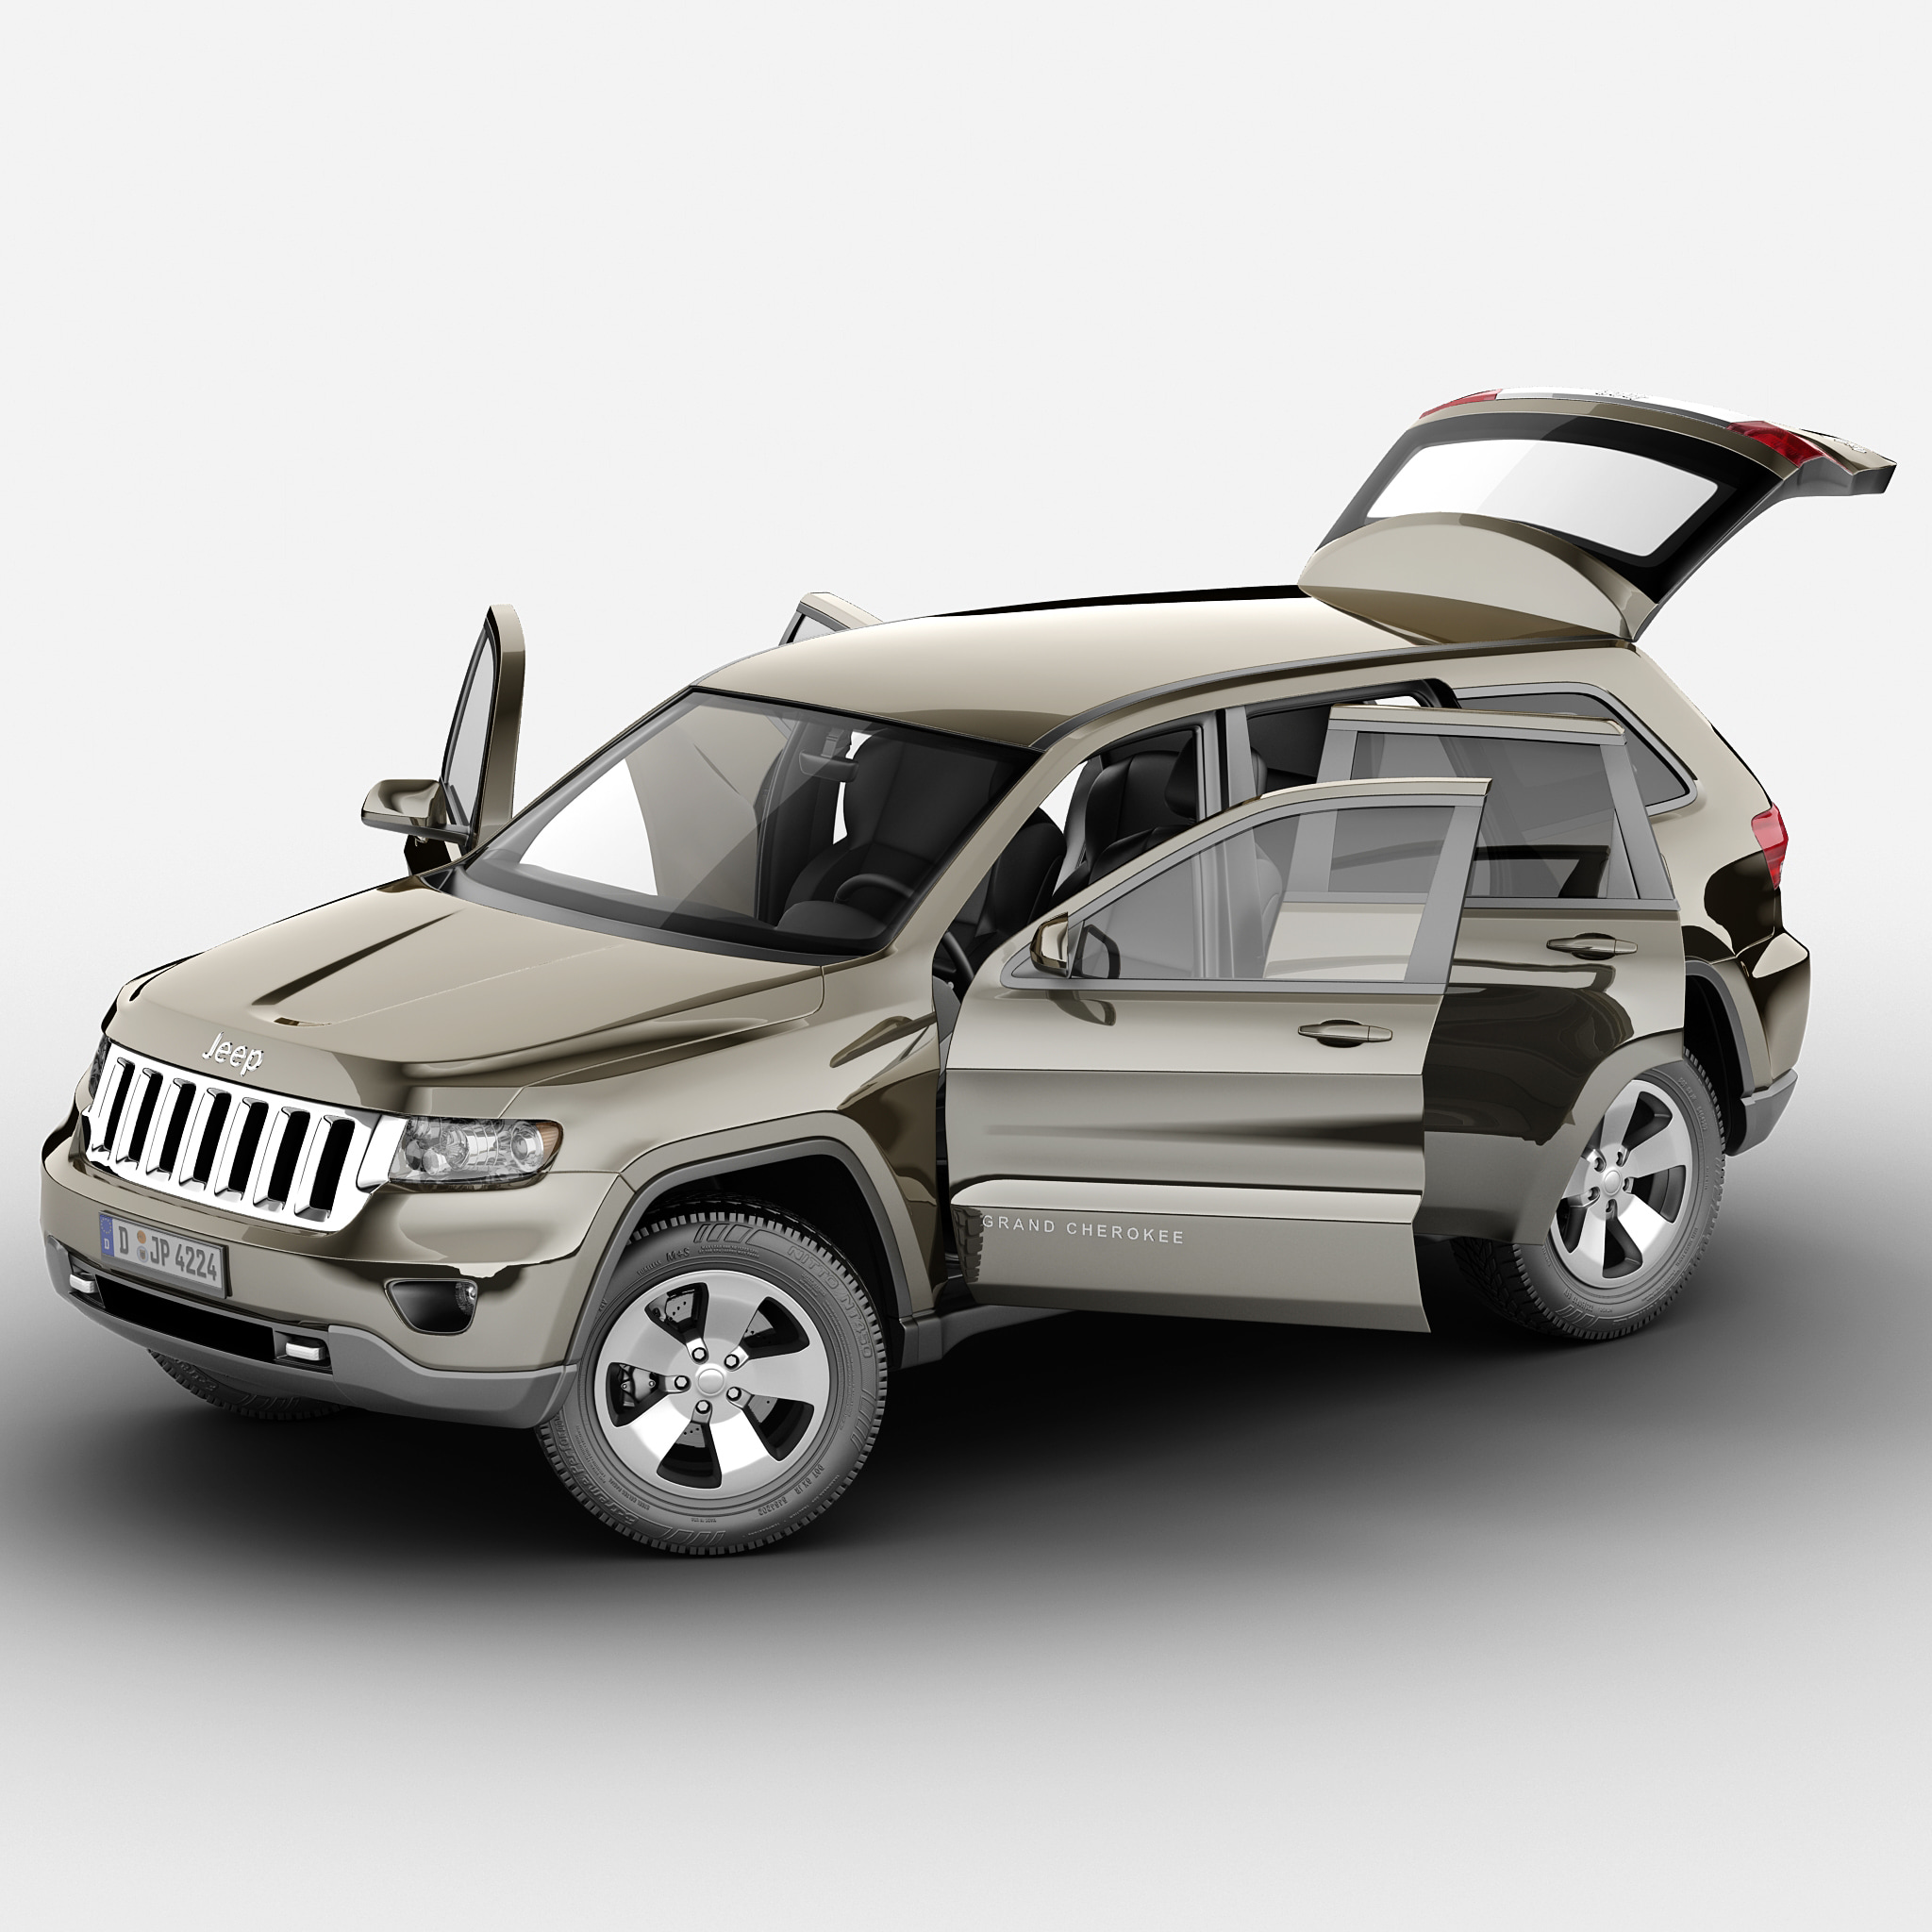 Jeep Grand Cherokee 2012 Rigged_24.jpg